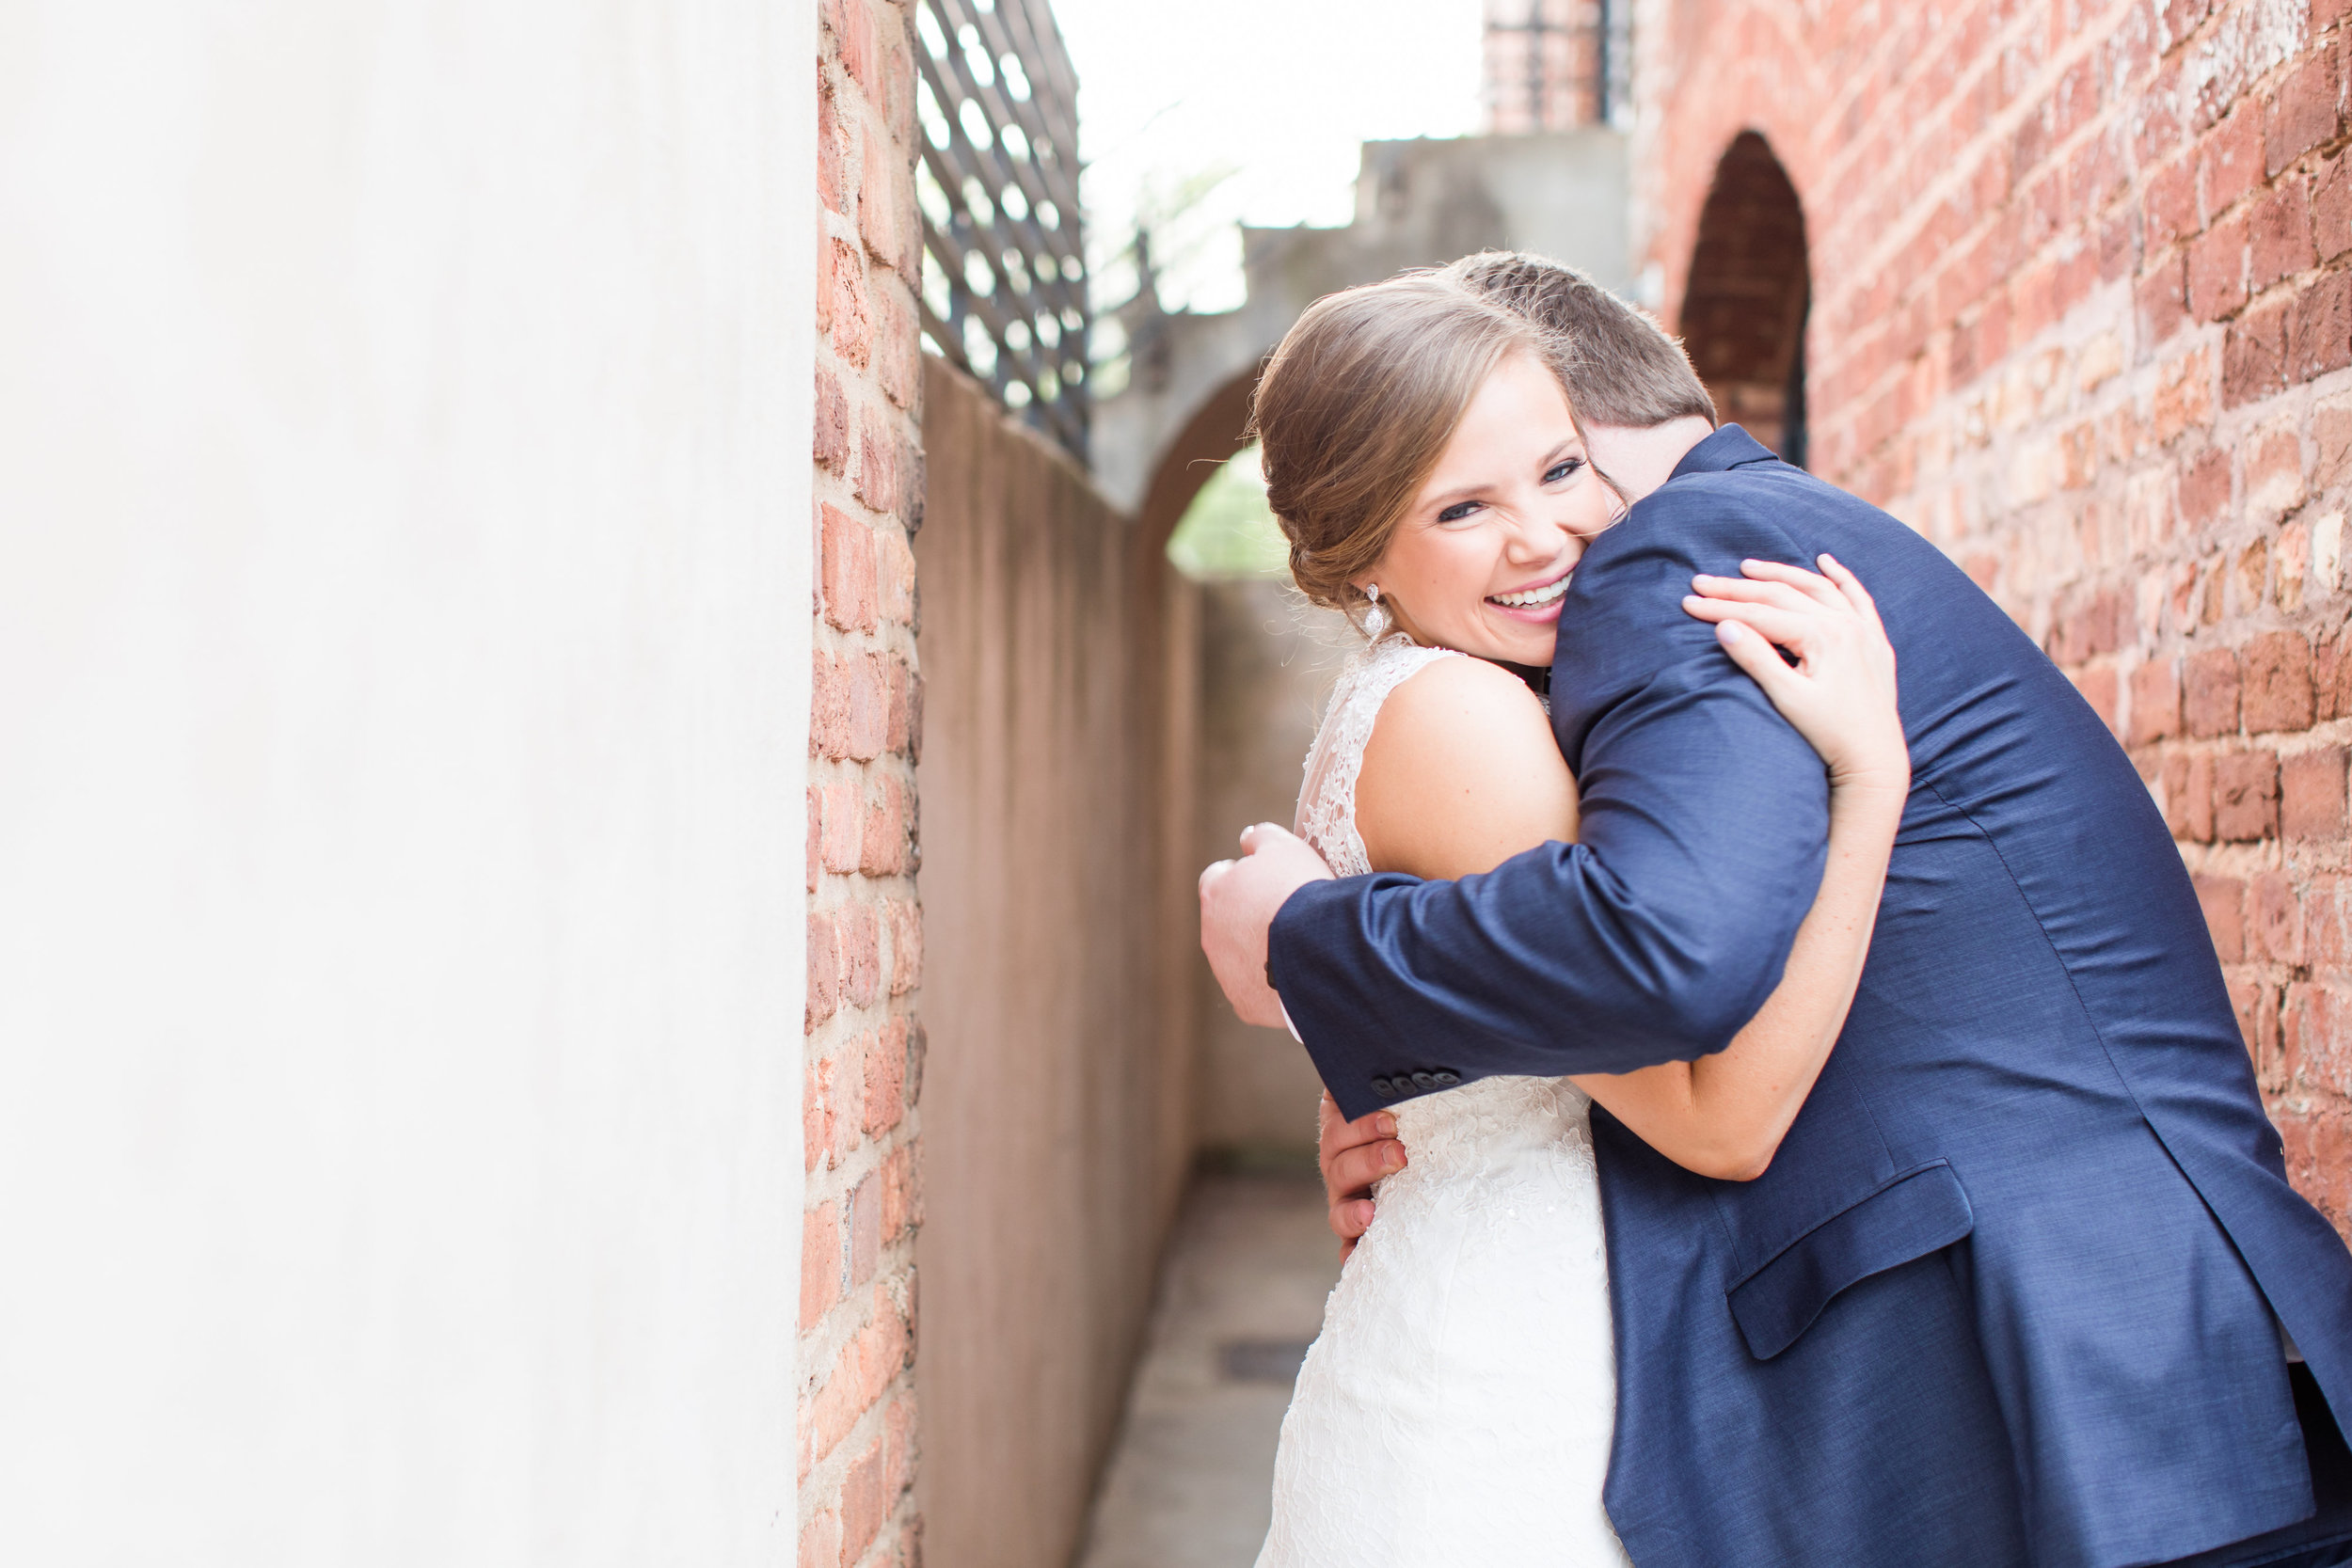 Wedding-DJ-Greenville-SC-Old Cigar-Warehouse-Megan-and-Ben94.jpg